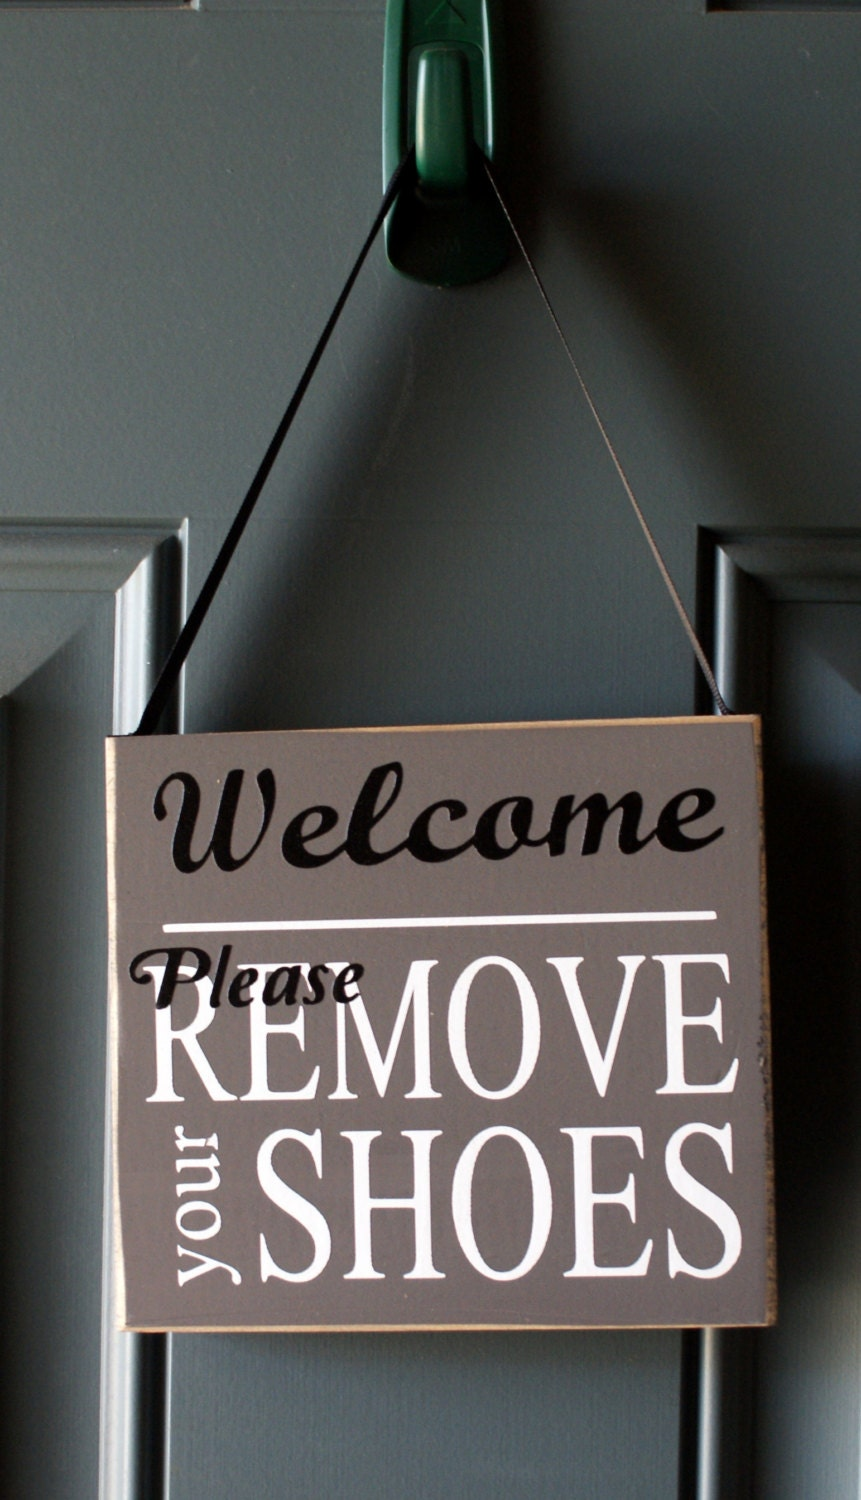 Welcome Please Remove Your Shoes wood sign - door hanger